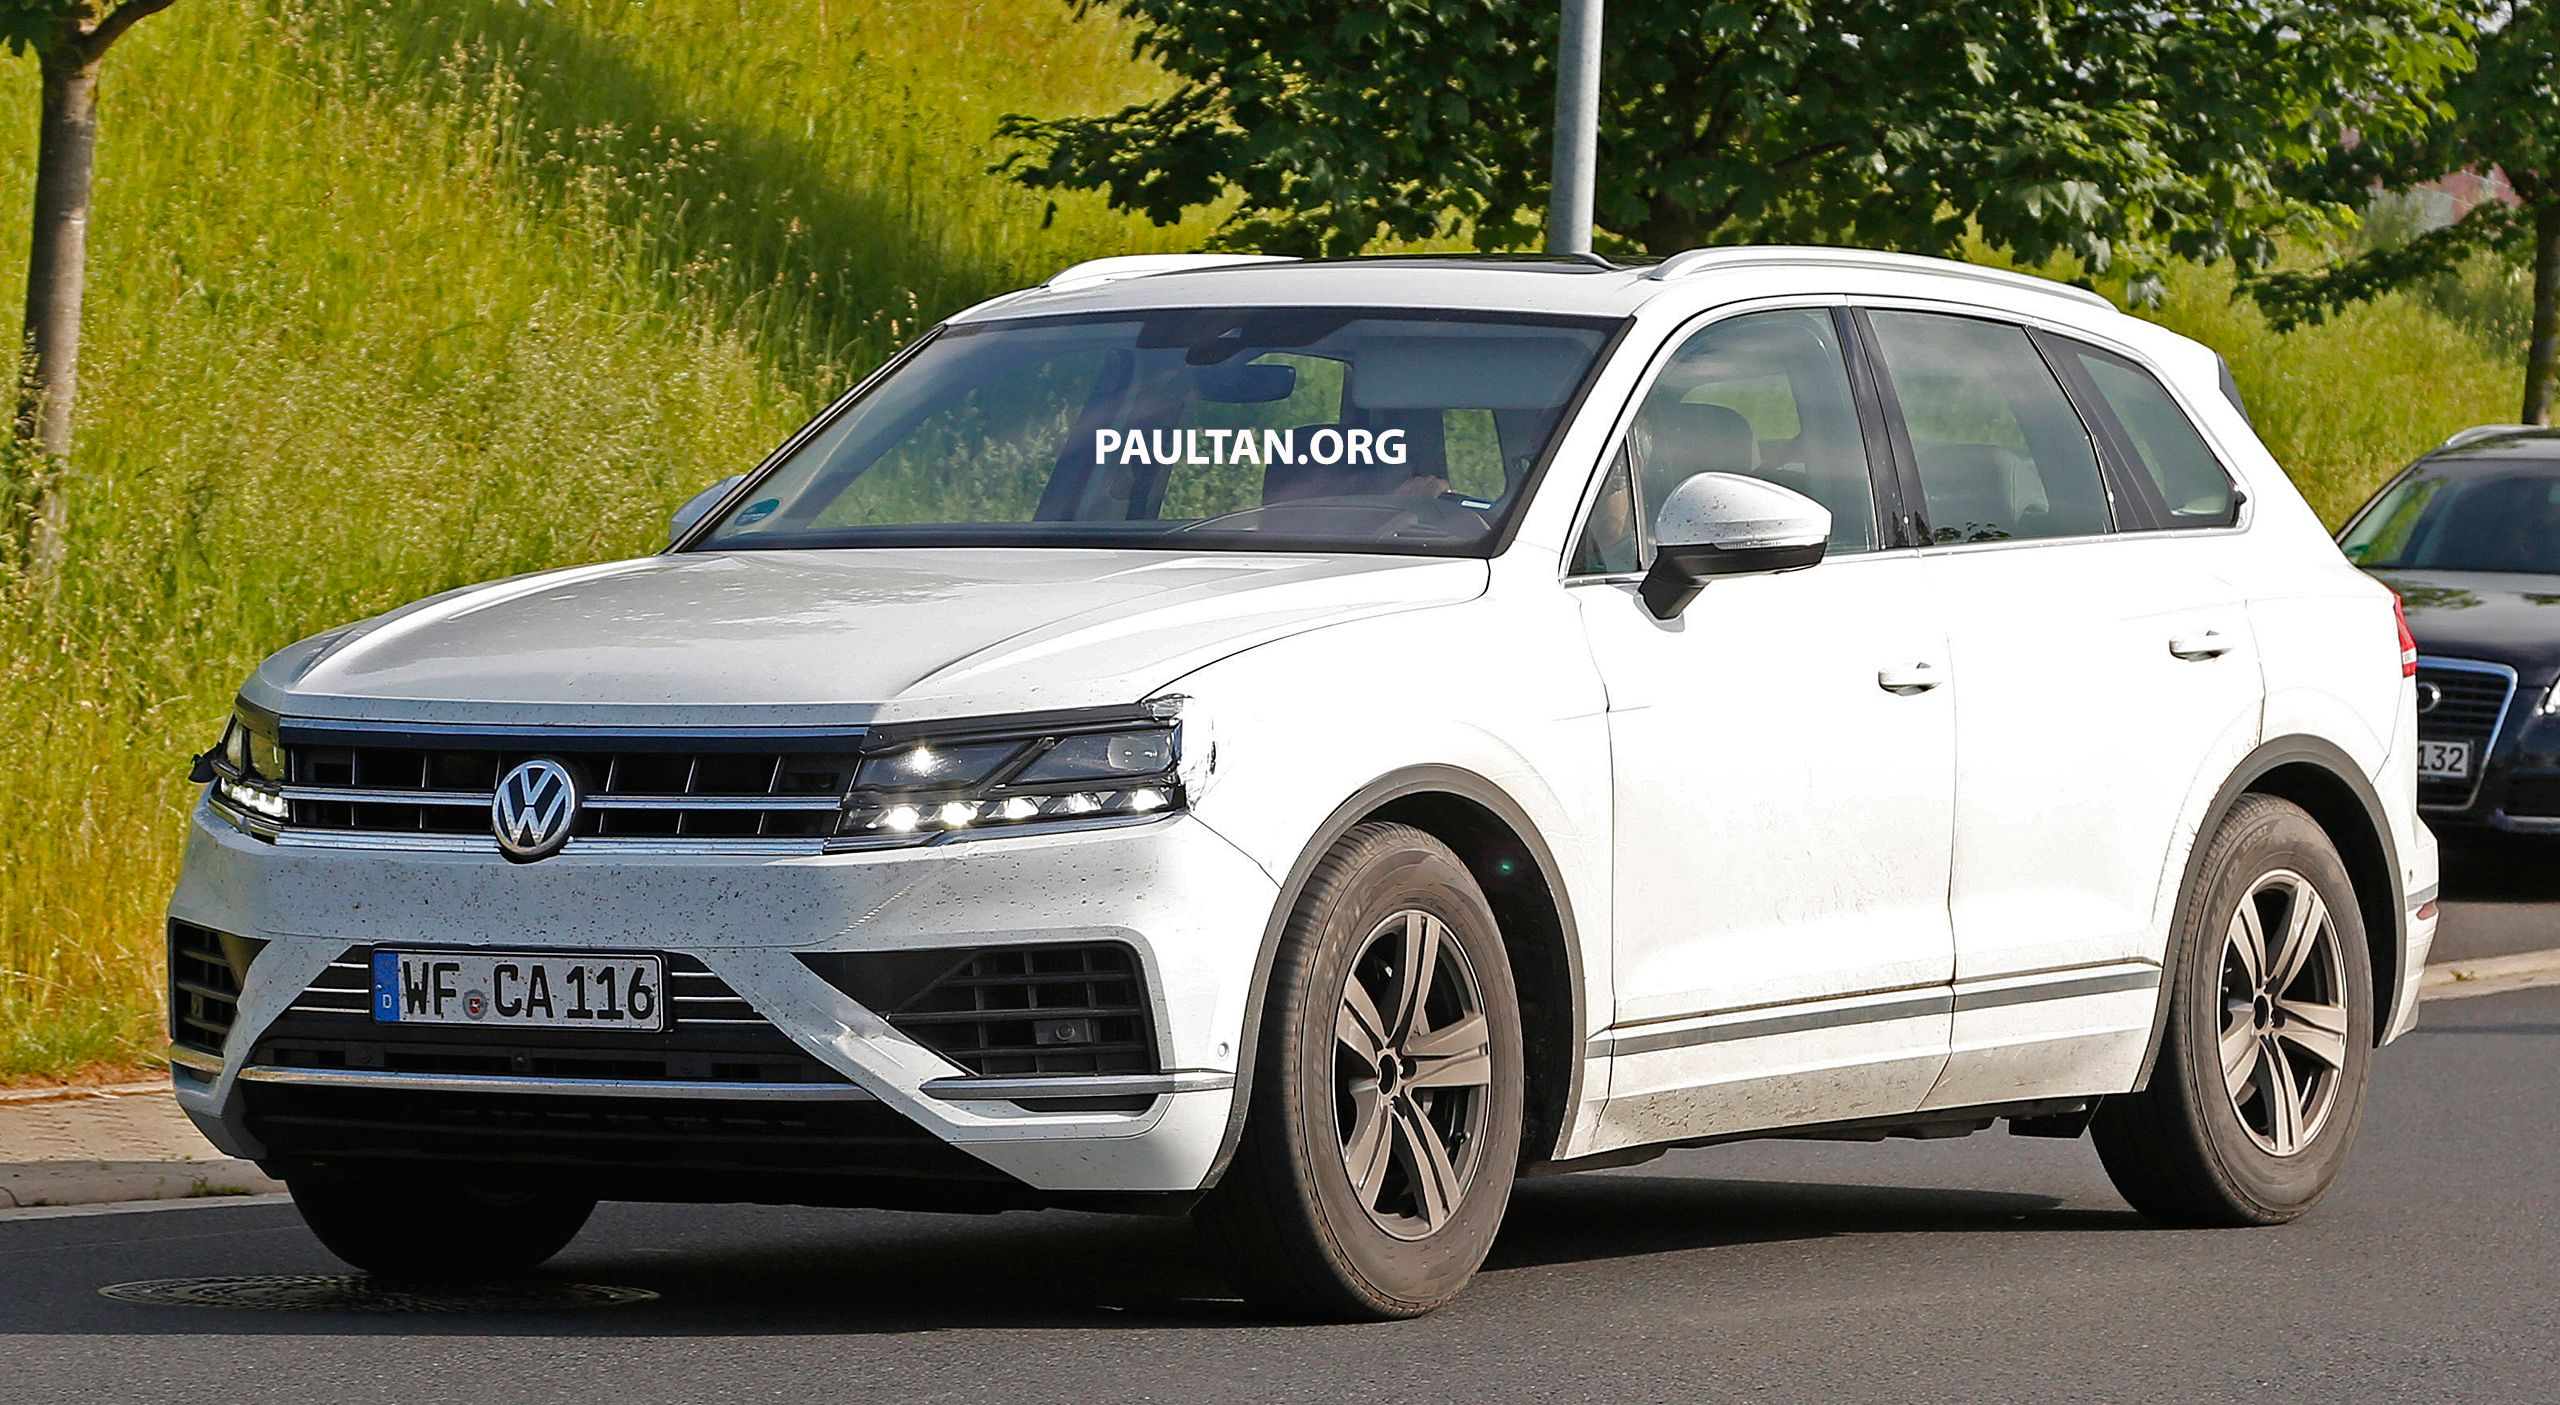 Caught: 2020 Volkswagen Golf Mk8 snapped fully undisguised